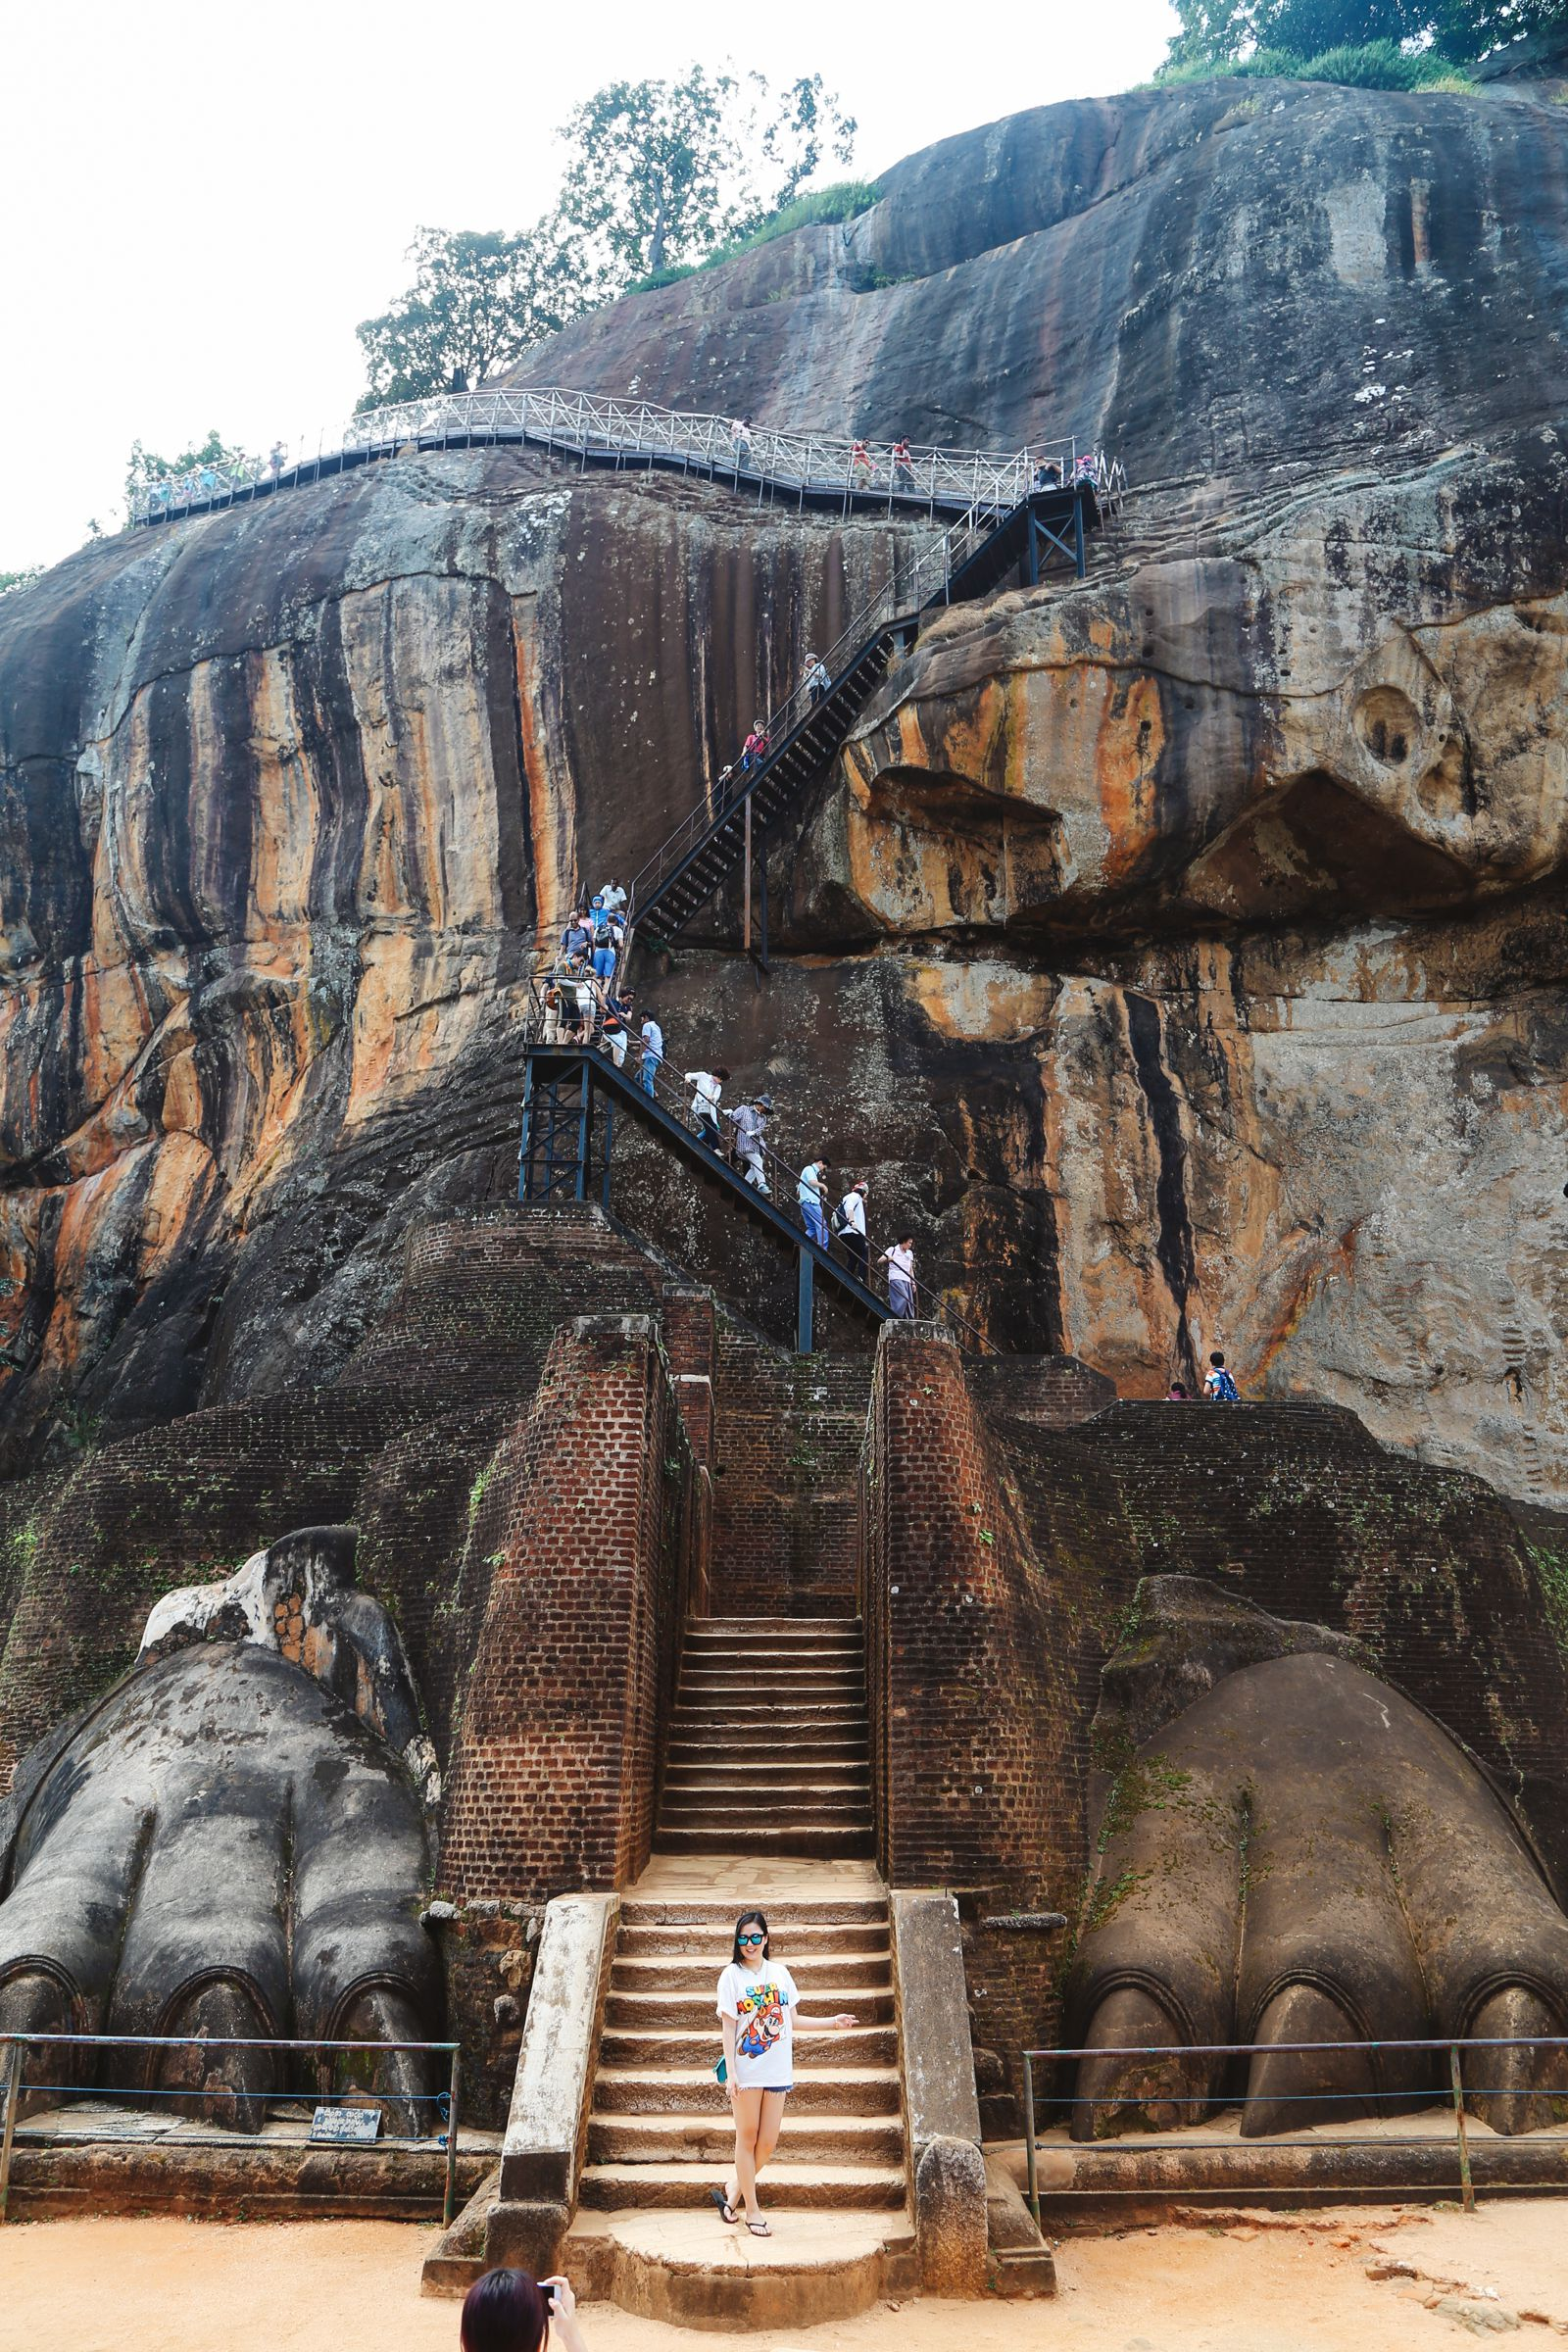 The Complete Guide To Climbing Sri Lanka's UNESCO World Heritage Site Of Sigiriya - Lion Rock (25)